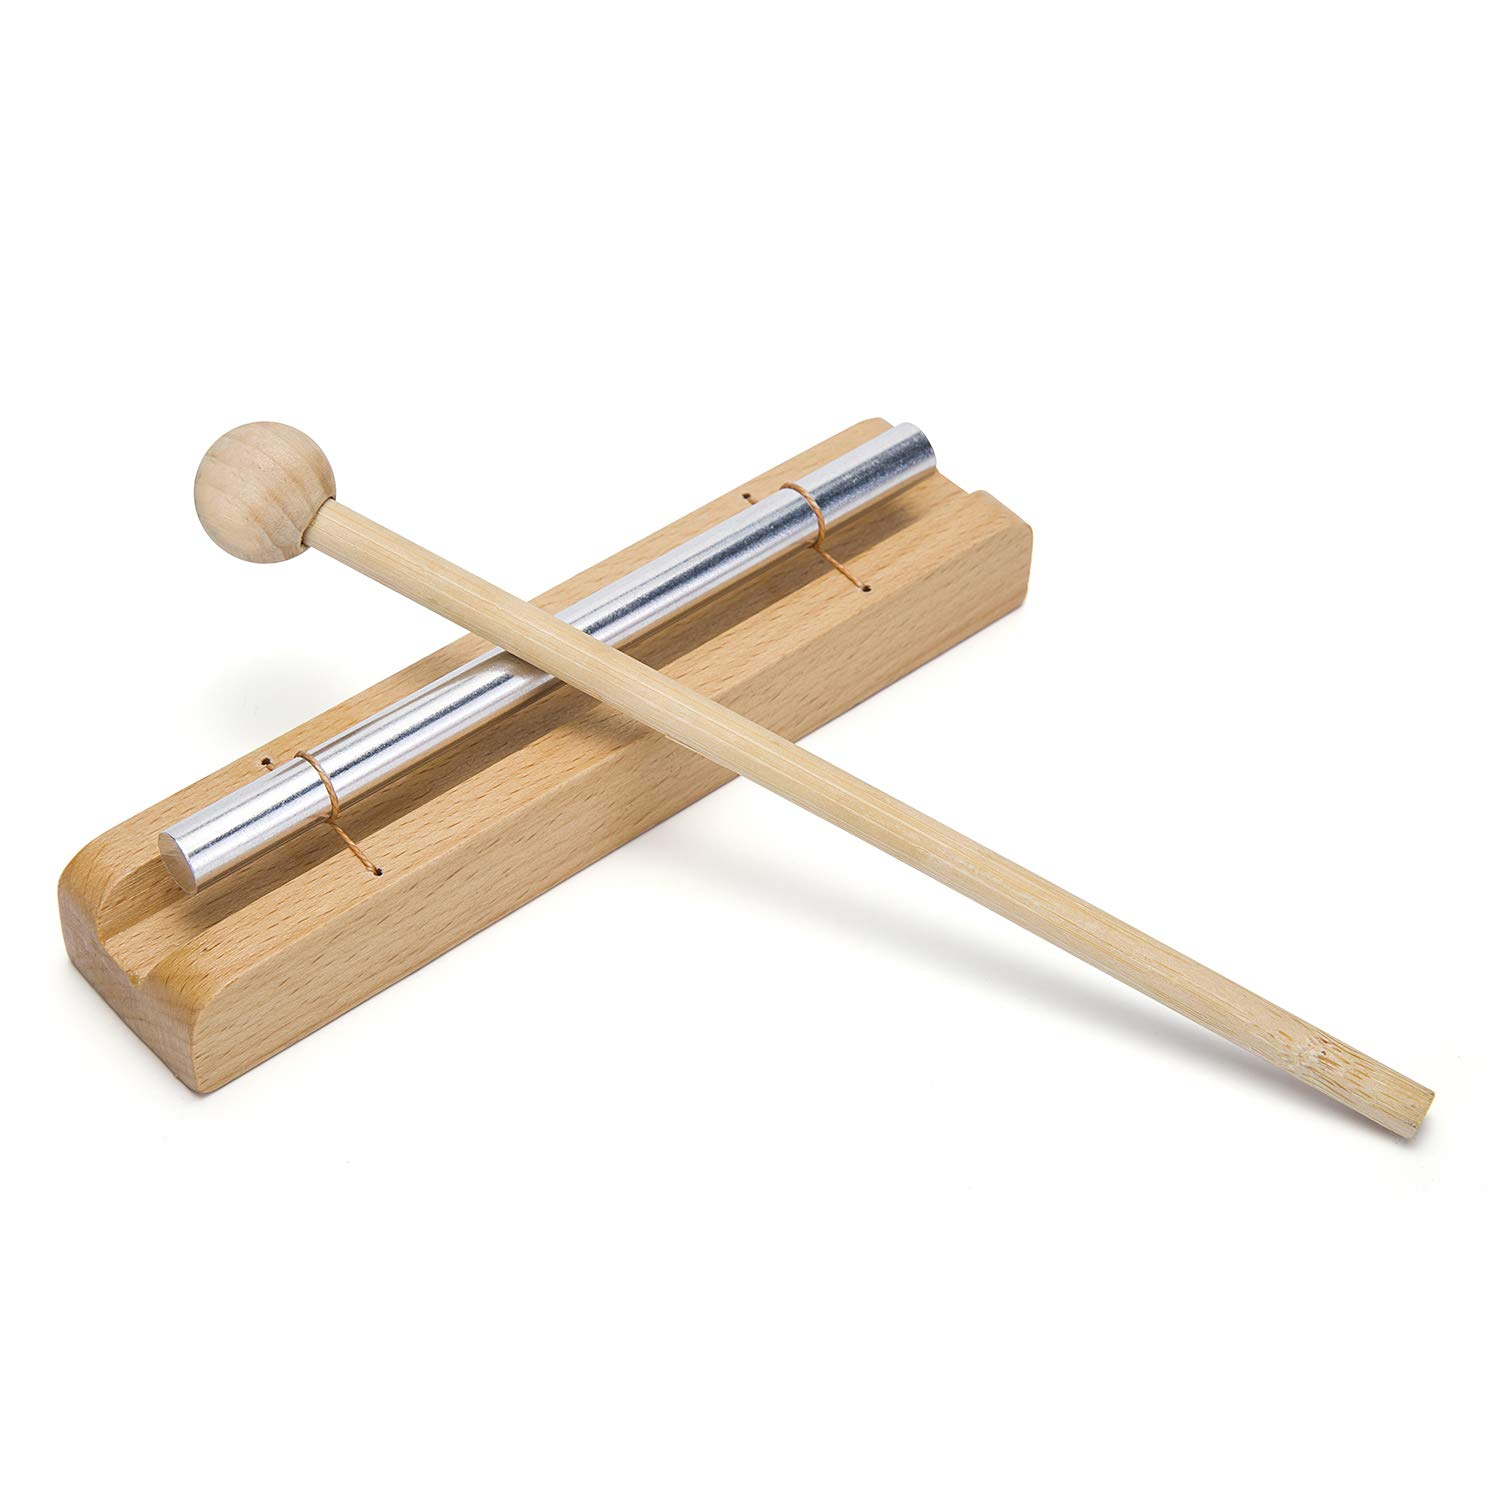 Zenergy Chime Solo - Eastern Energies Collection Musical Percussion Instrument with Mallet for Meditation, Classroom Use and Sound Therapy Mihey